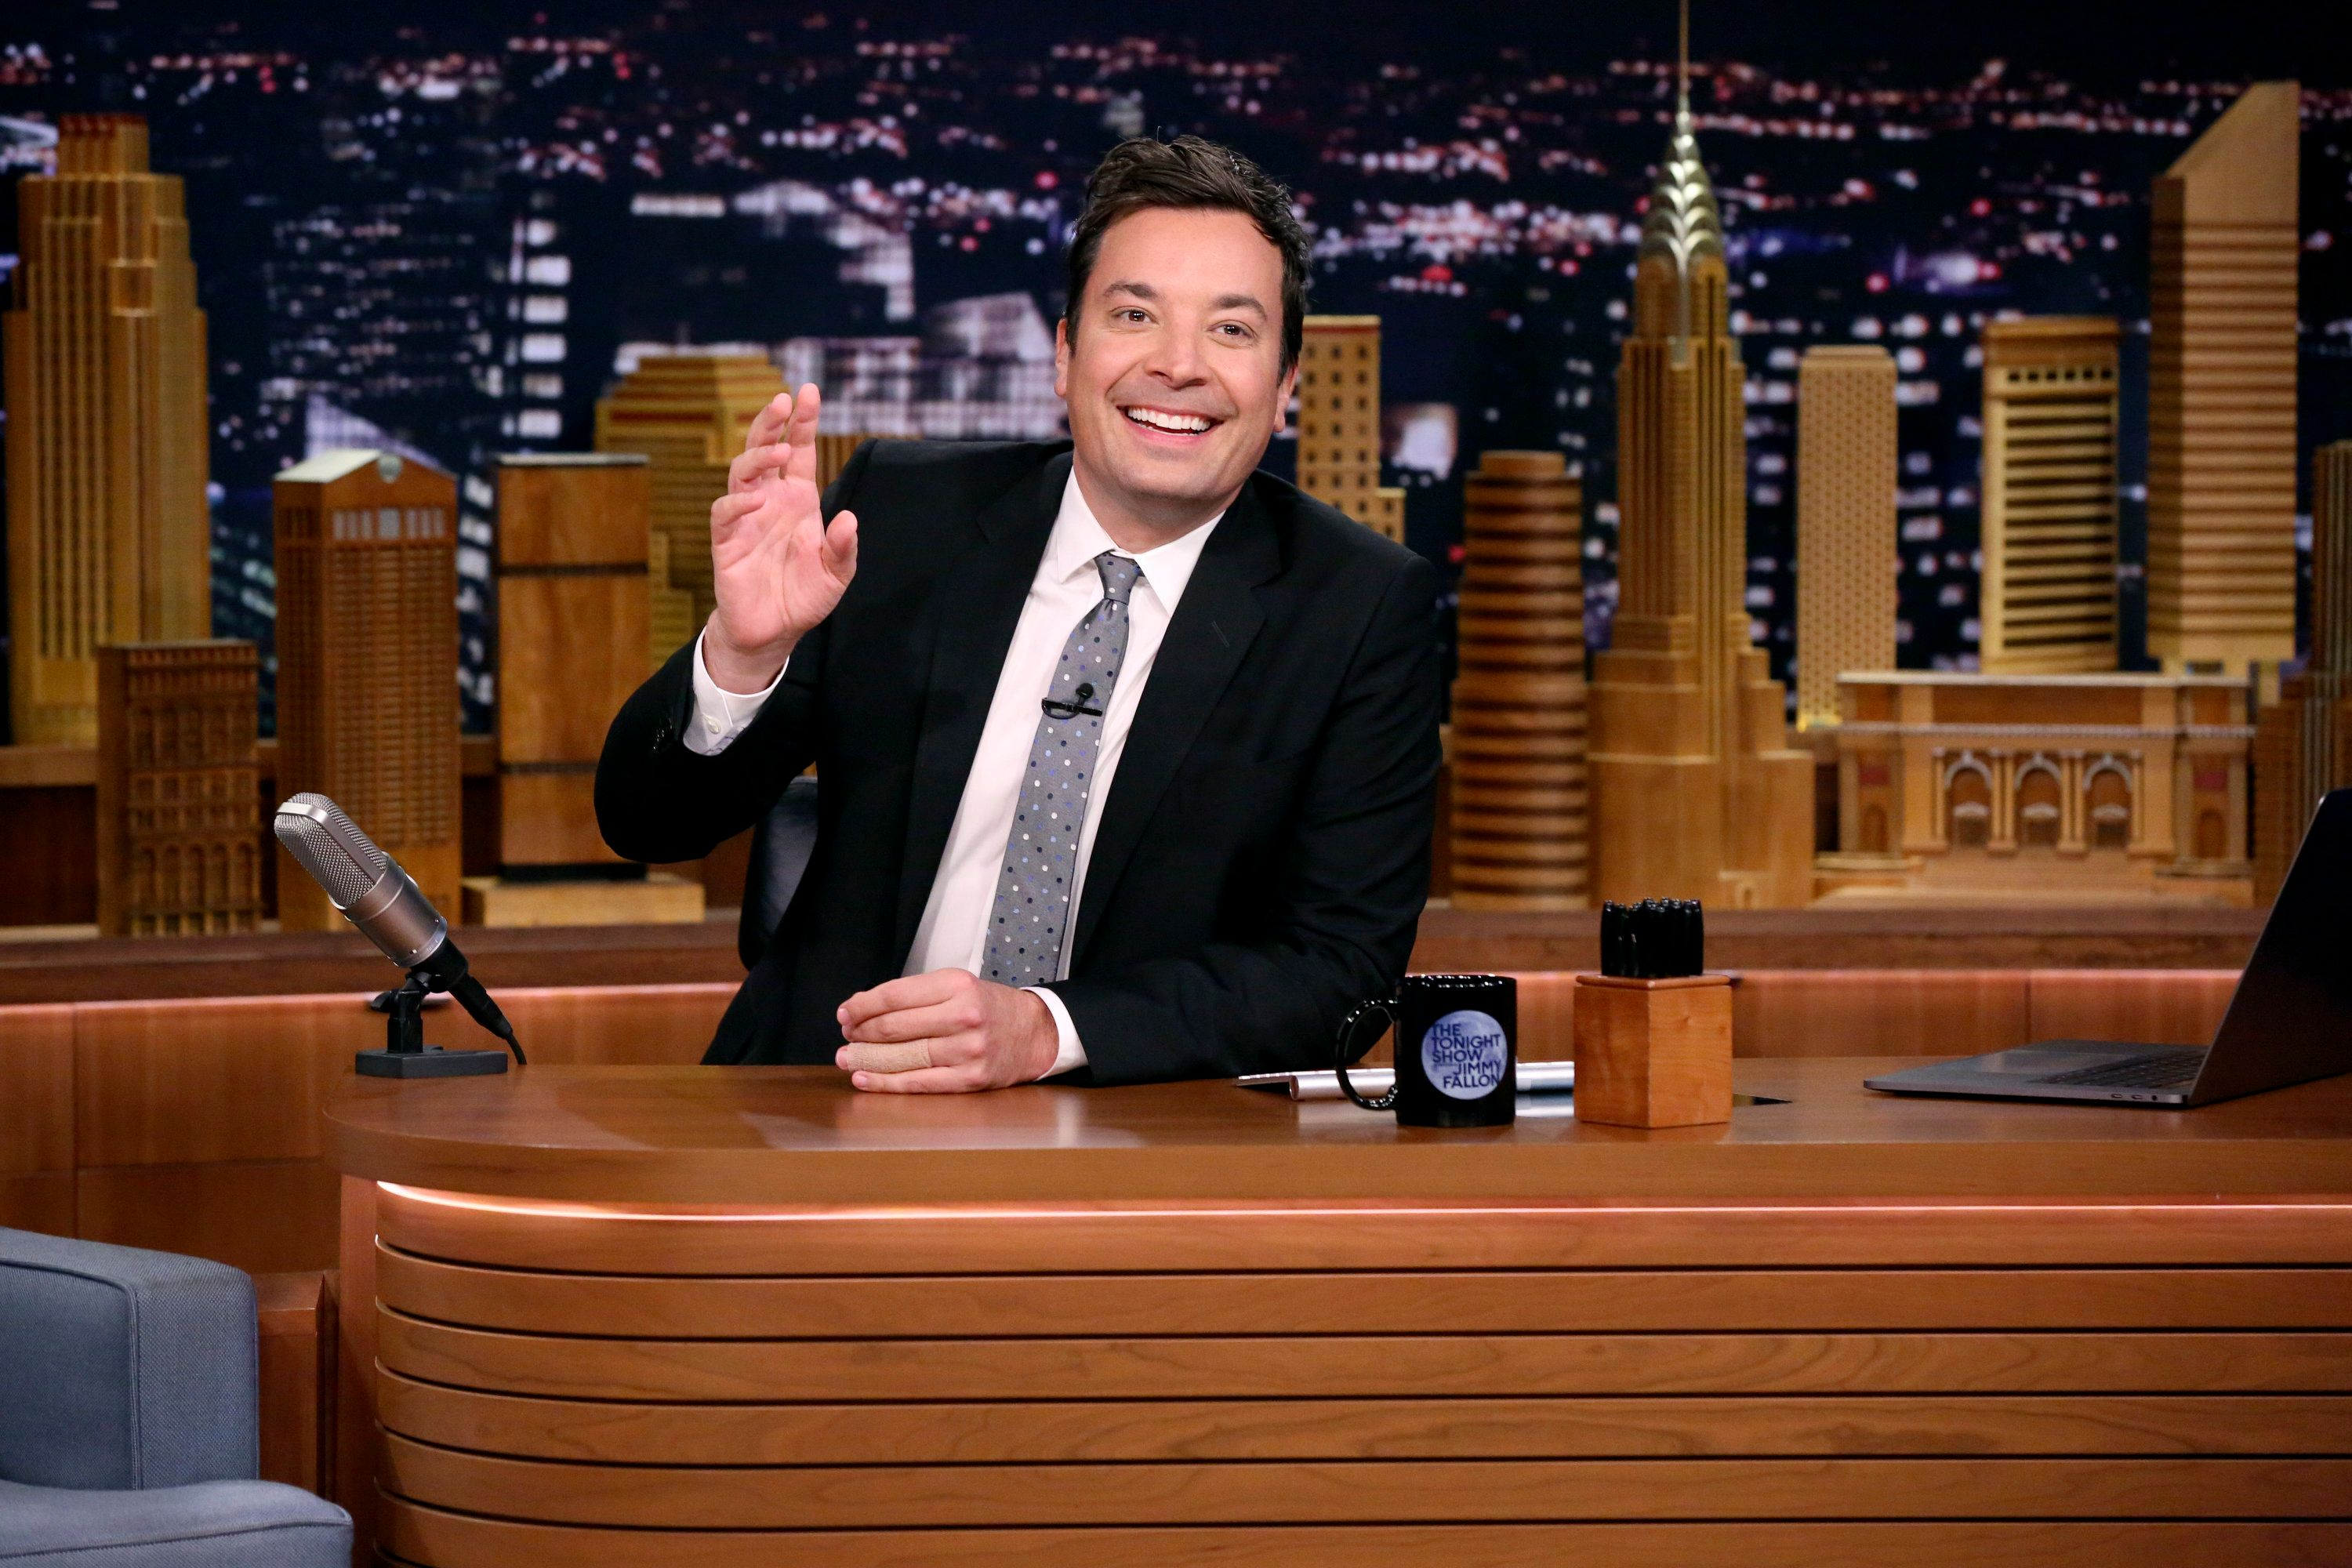 Jimmy Fallon's mother passes away at 68